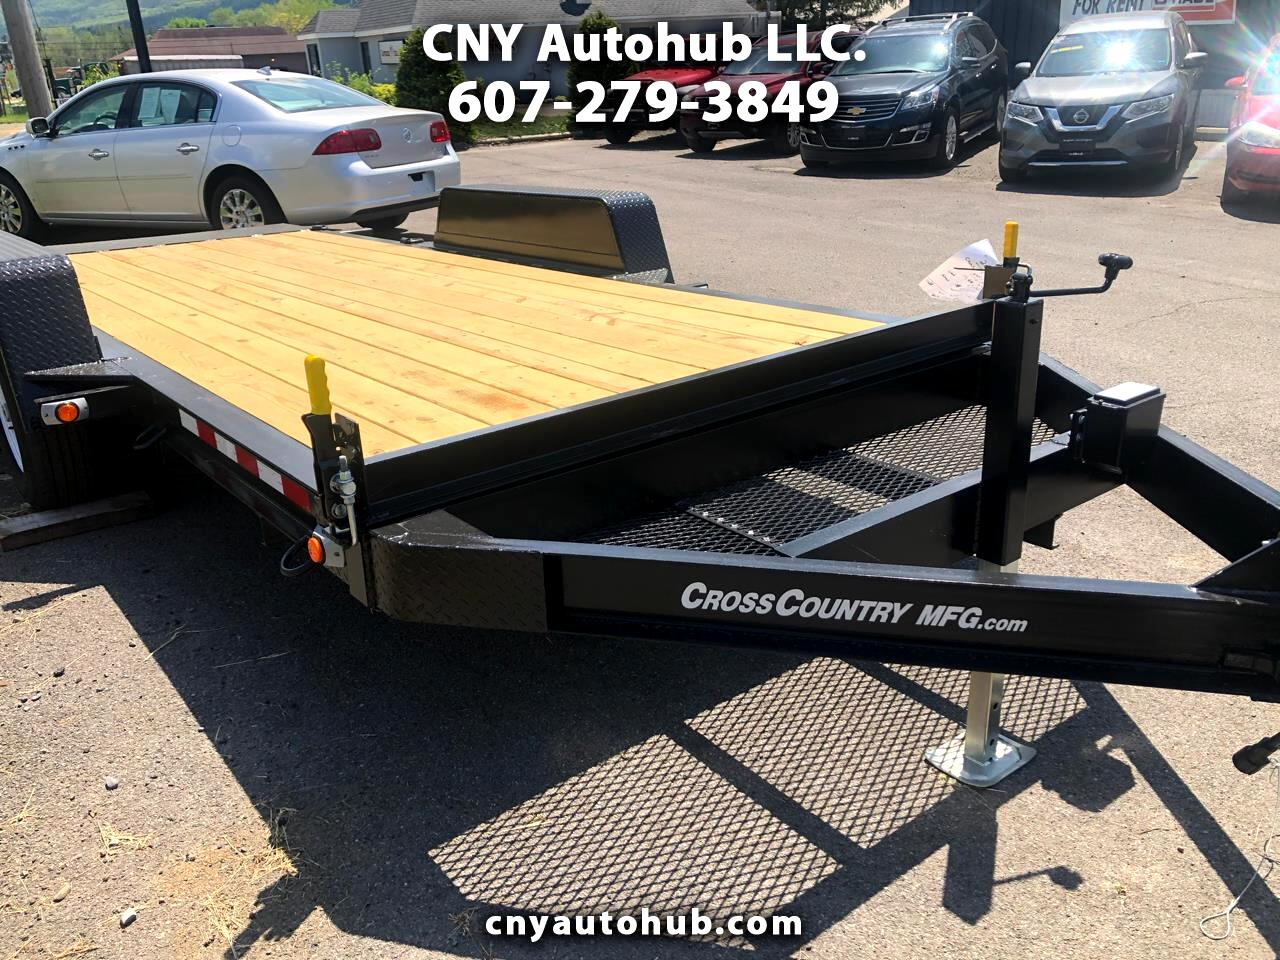 Cross Country Manufacturing Equipment Trailer  2020